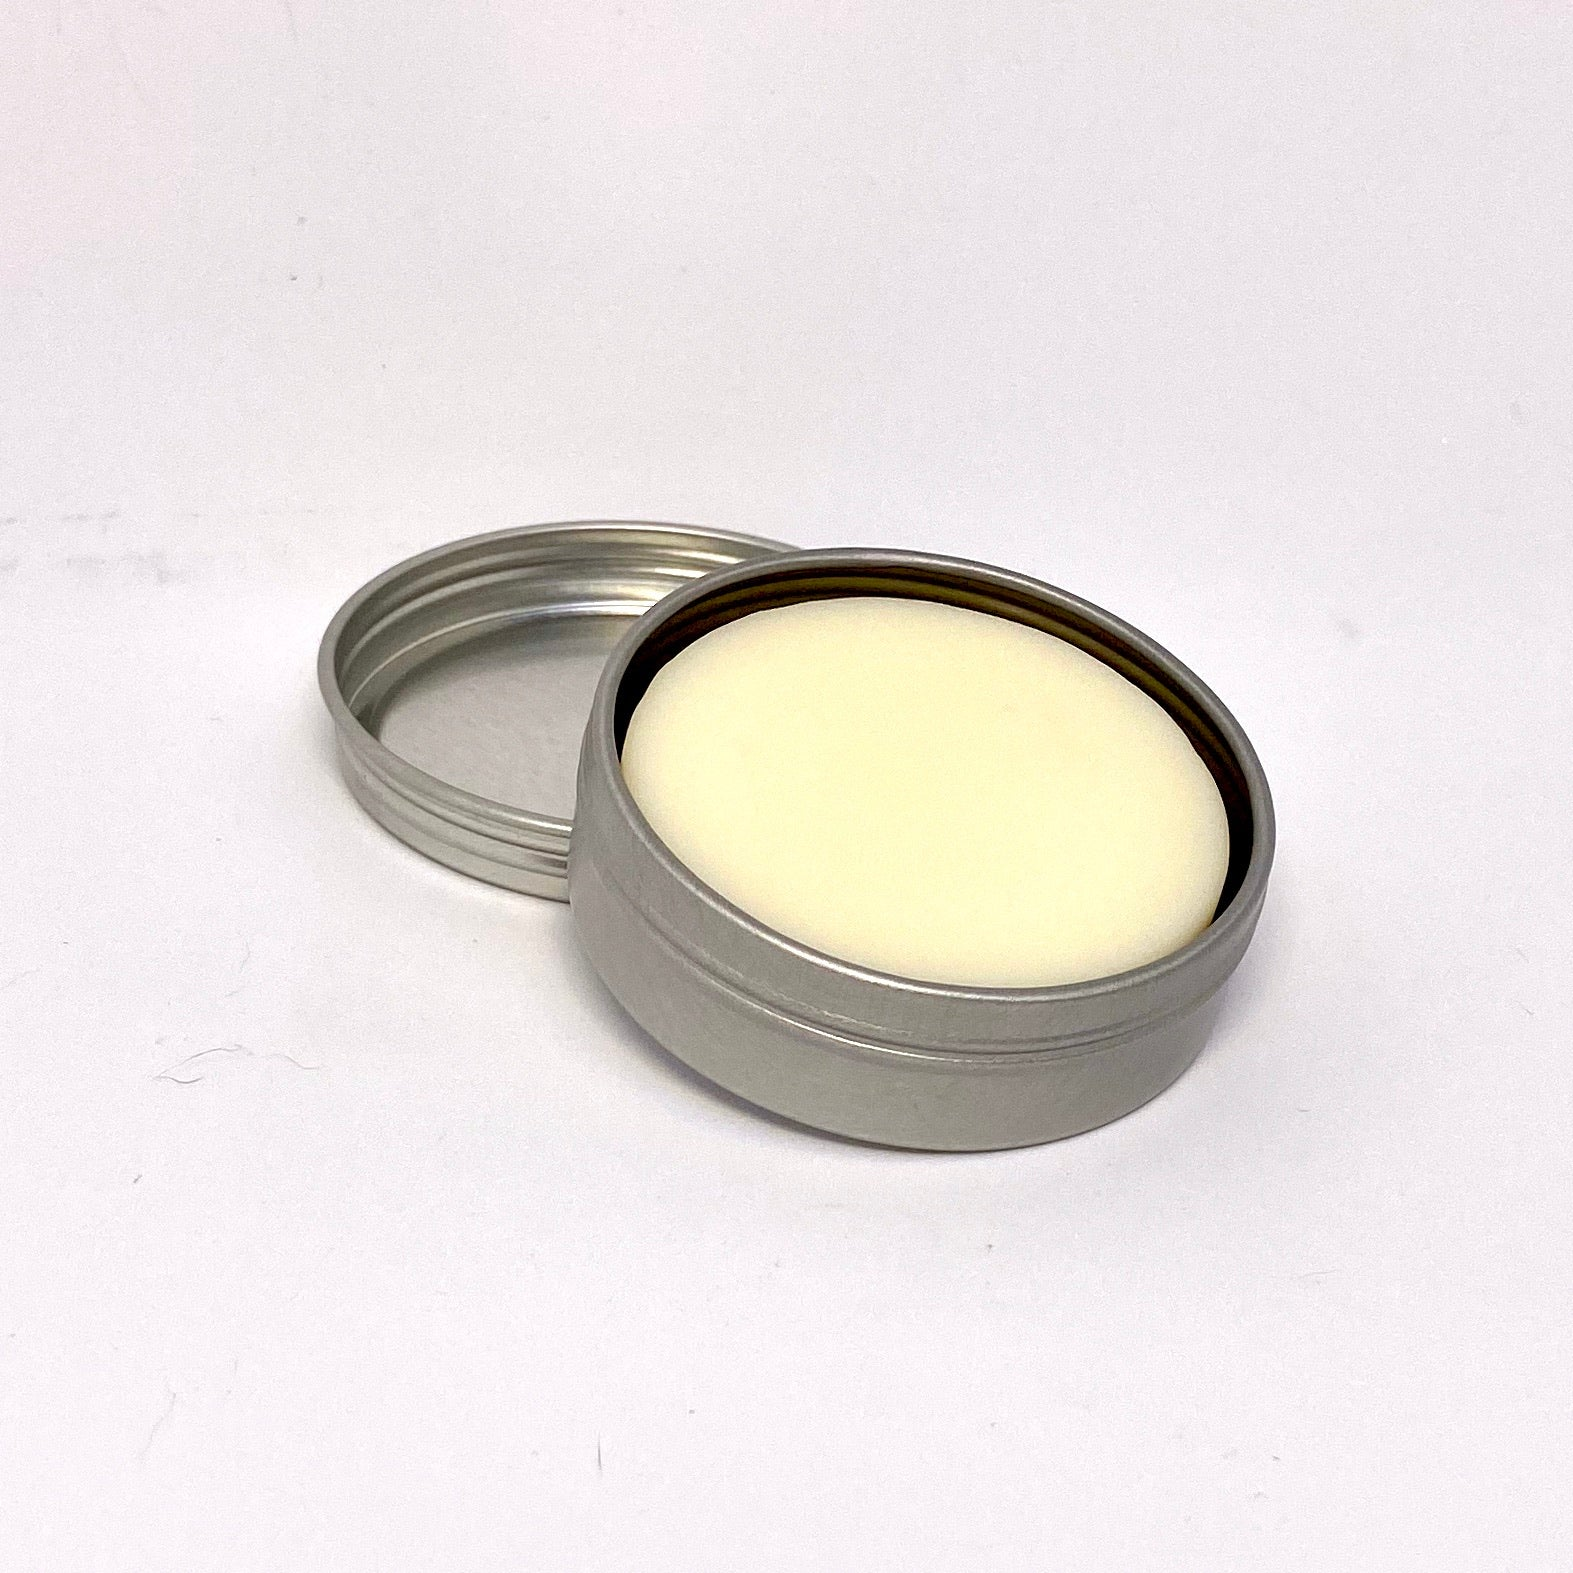 Naked Truth Lotion Bar